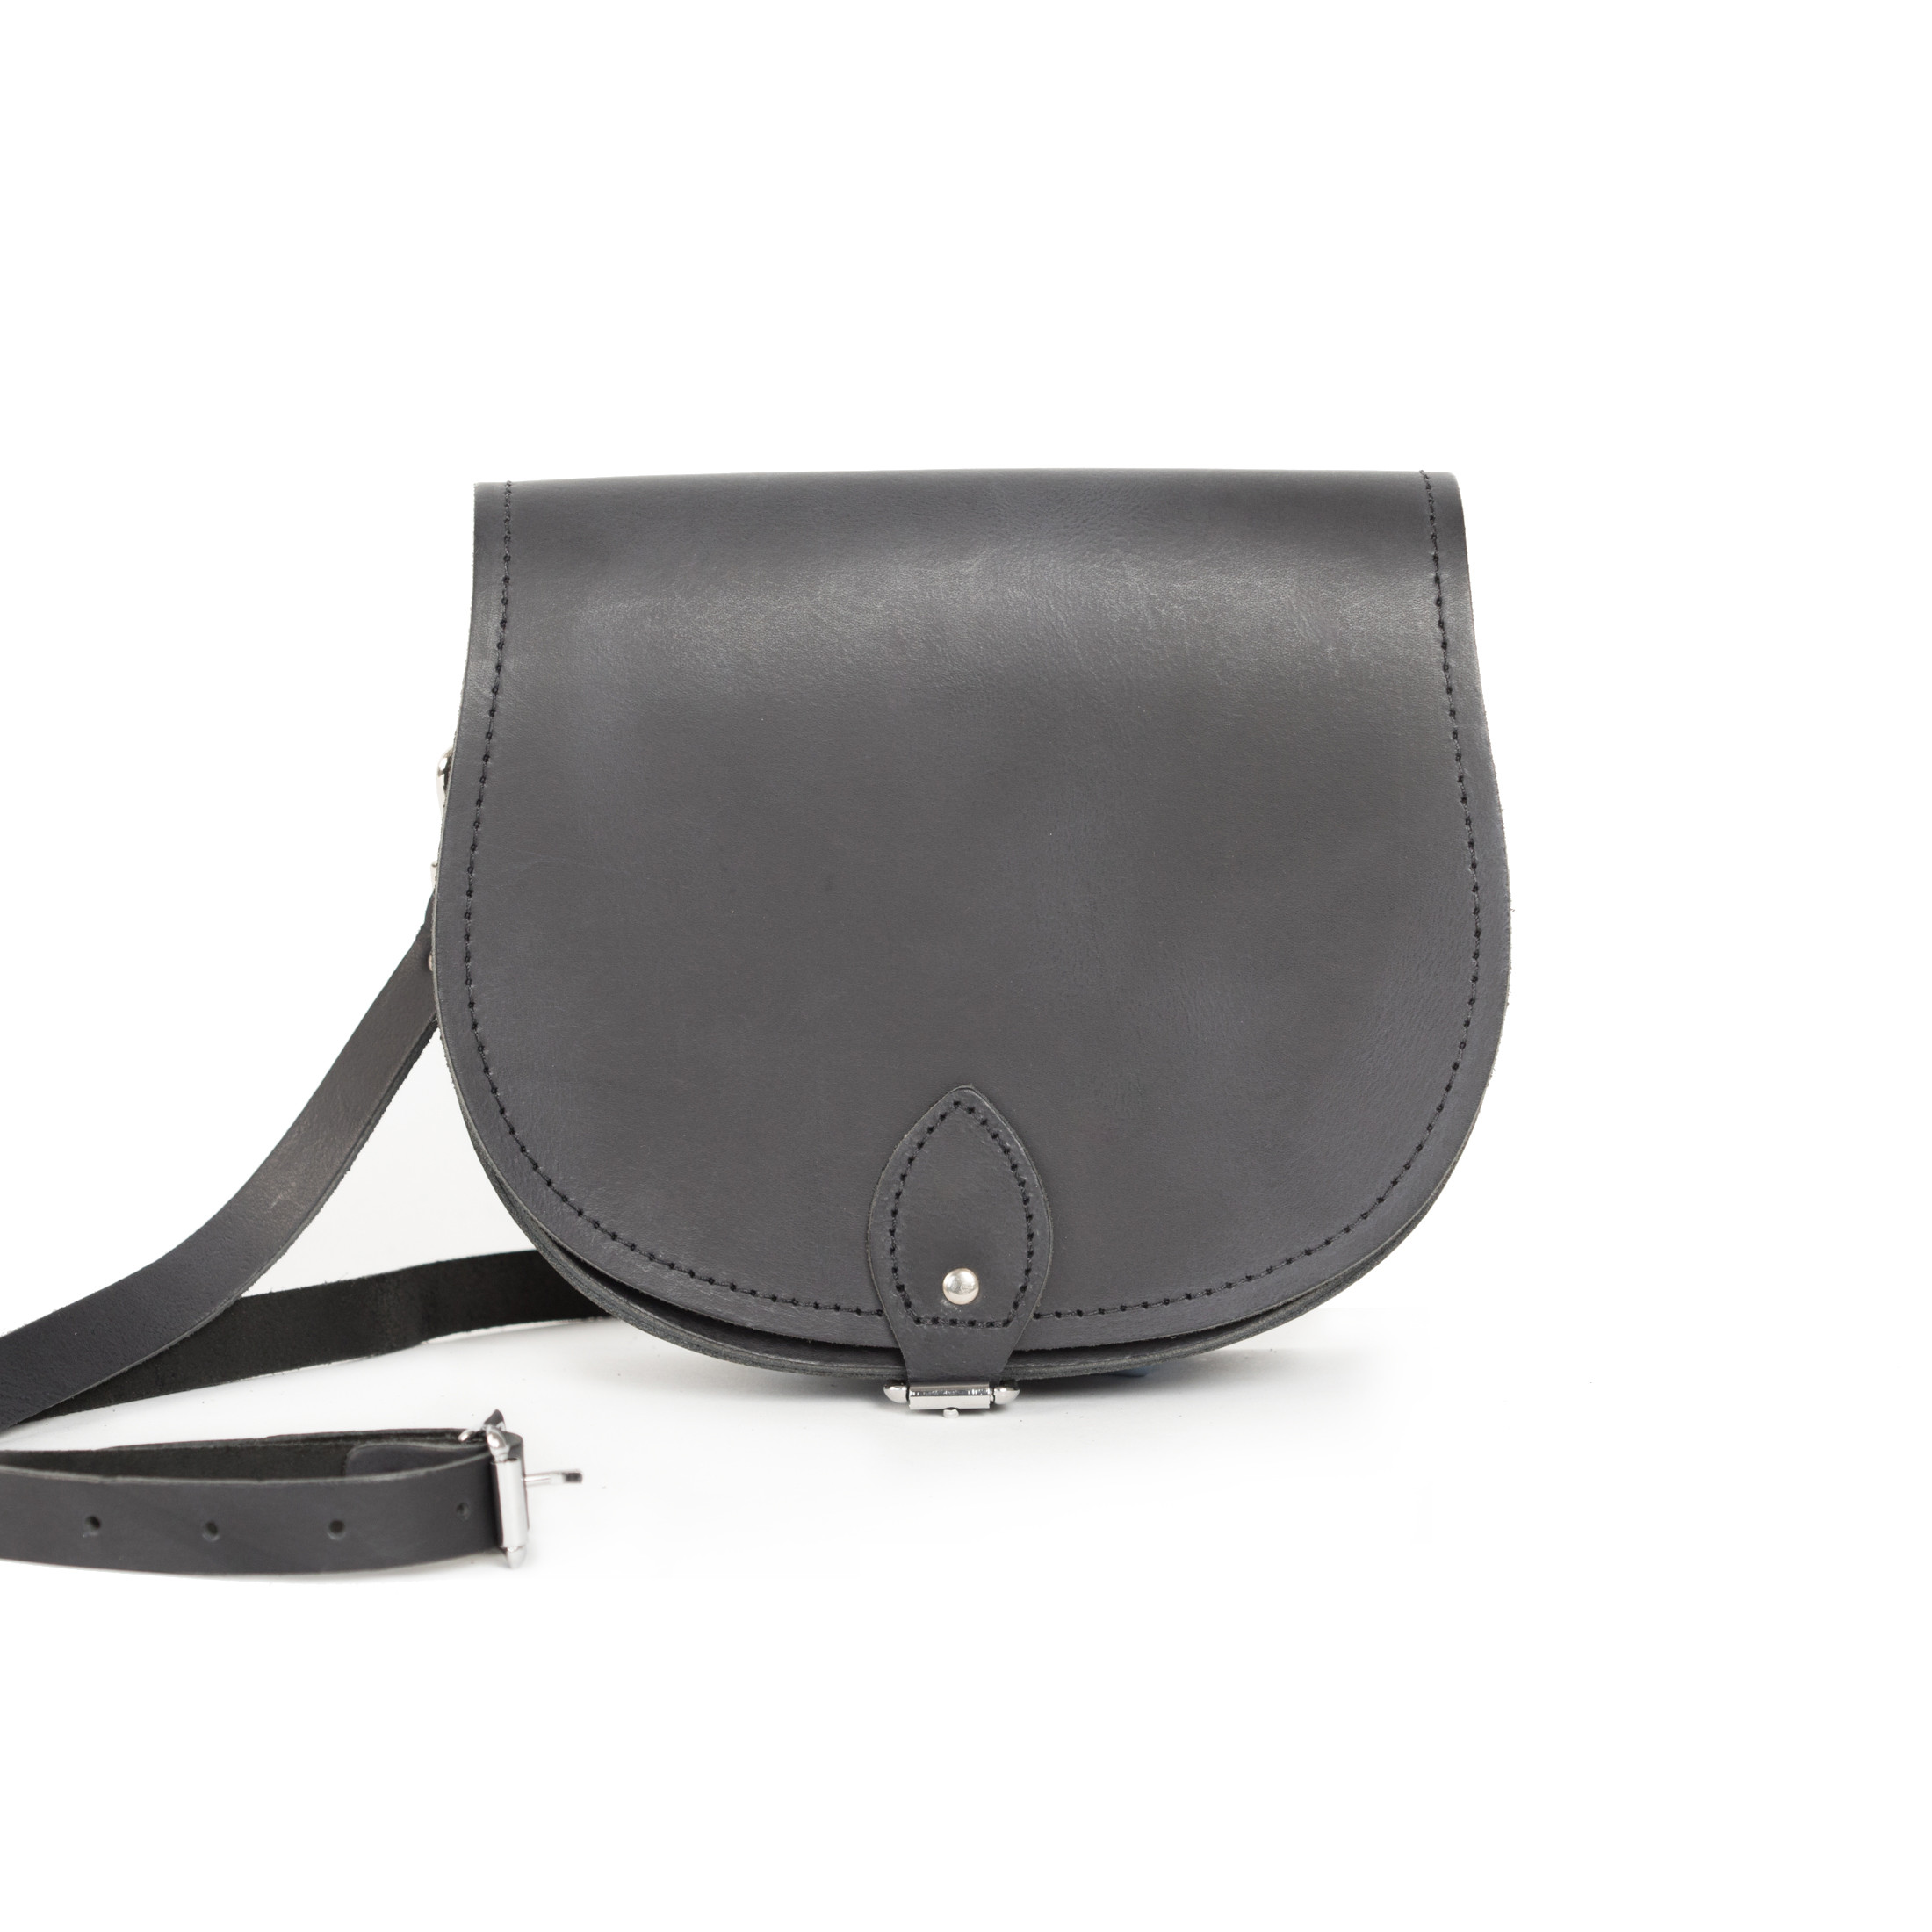 Avery Premium Leather Saddle Bag in Premium Black